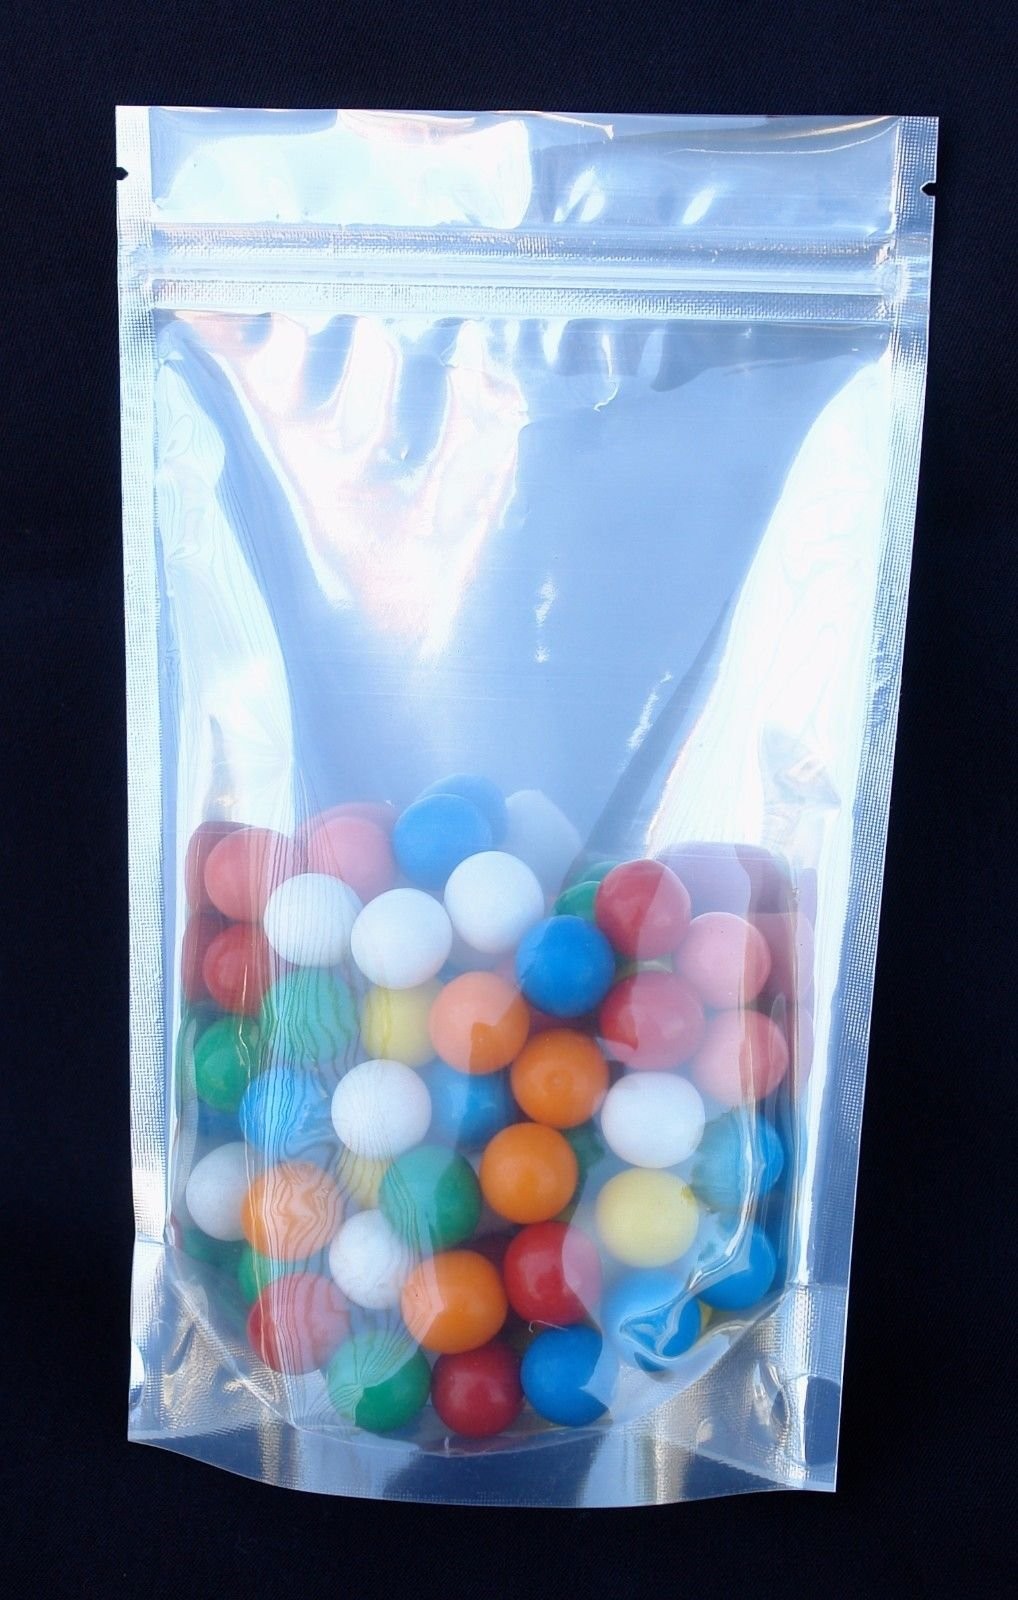 2000pcs~#5~ 4 x 2 x 6.4'' Clear Front Barrier Zipper Bag Stand Up Pouch For Packing Pill Cannabis by Dura